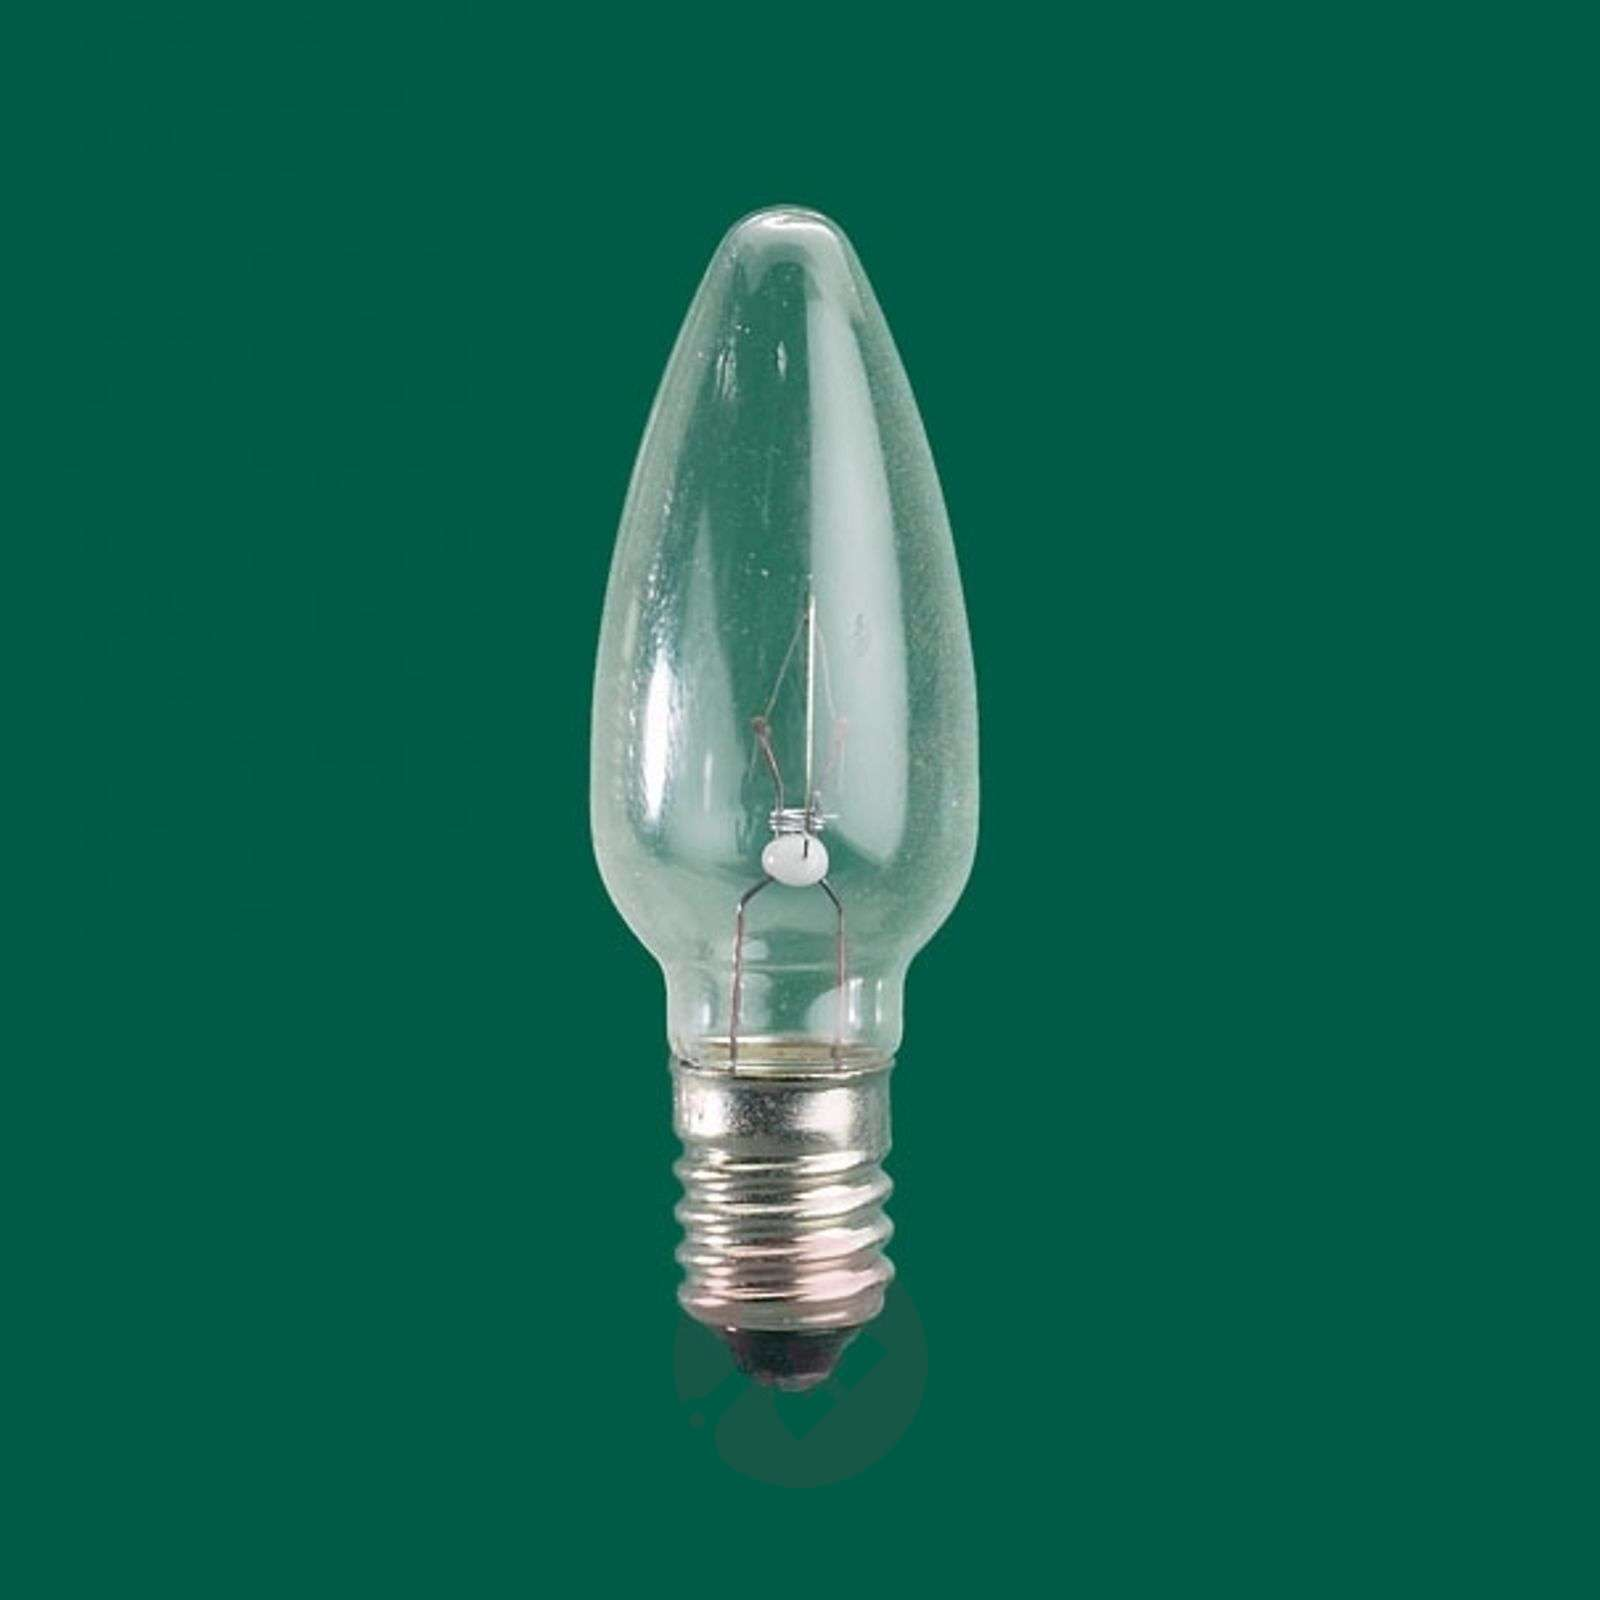 Rotpfeil Weihnachtsbeleuchtung.E10 3 W 12 V Bulbs Pack Of 3 Candle Shape